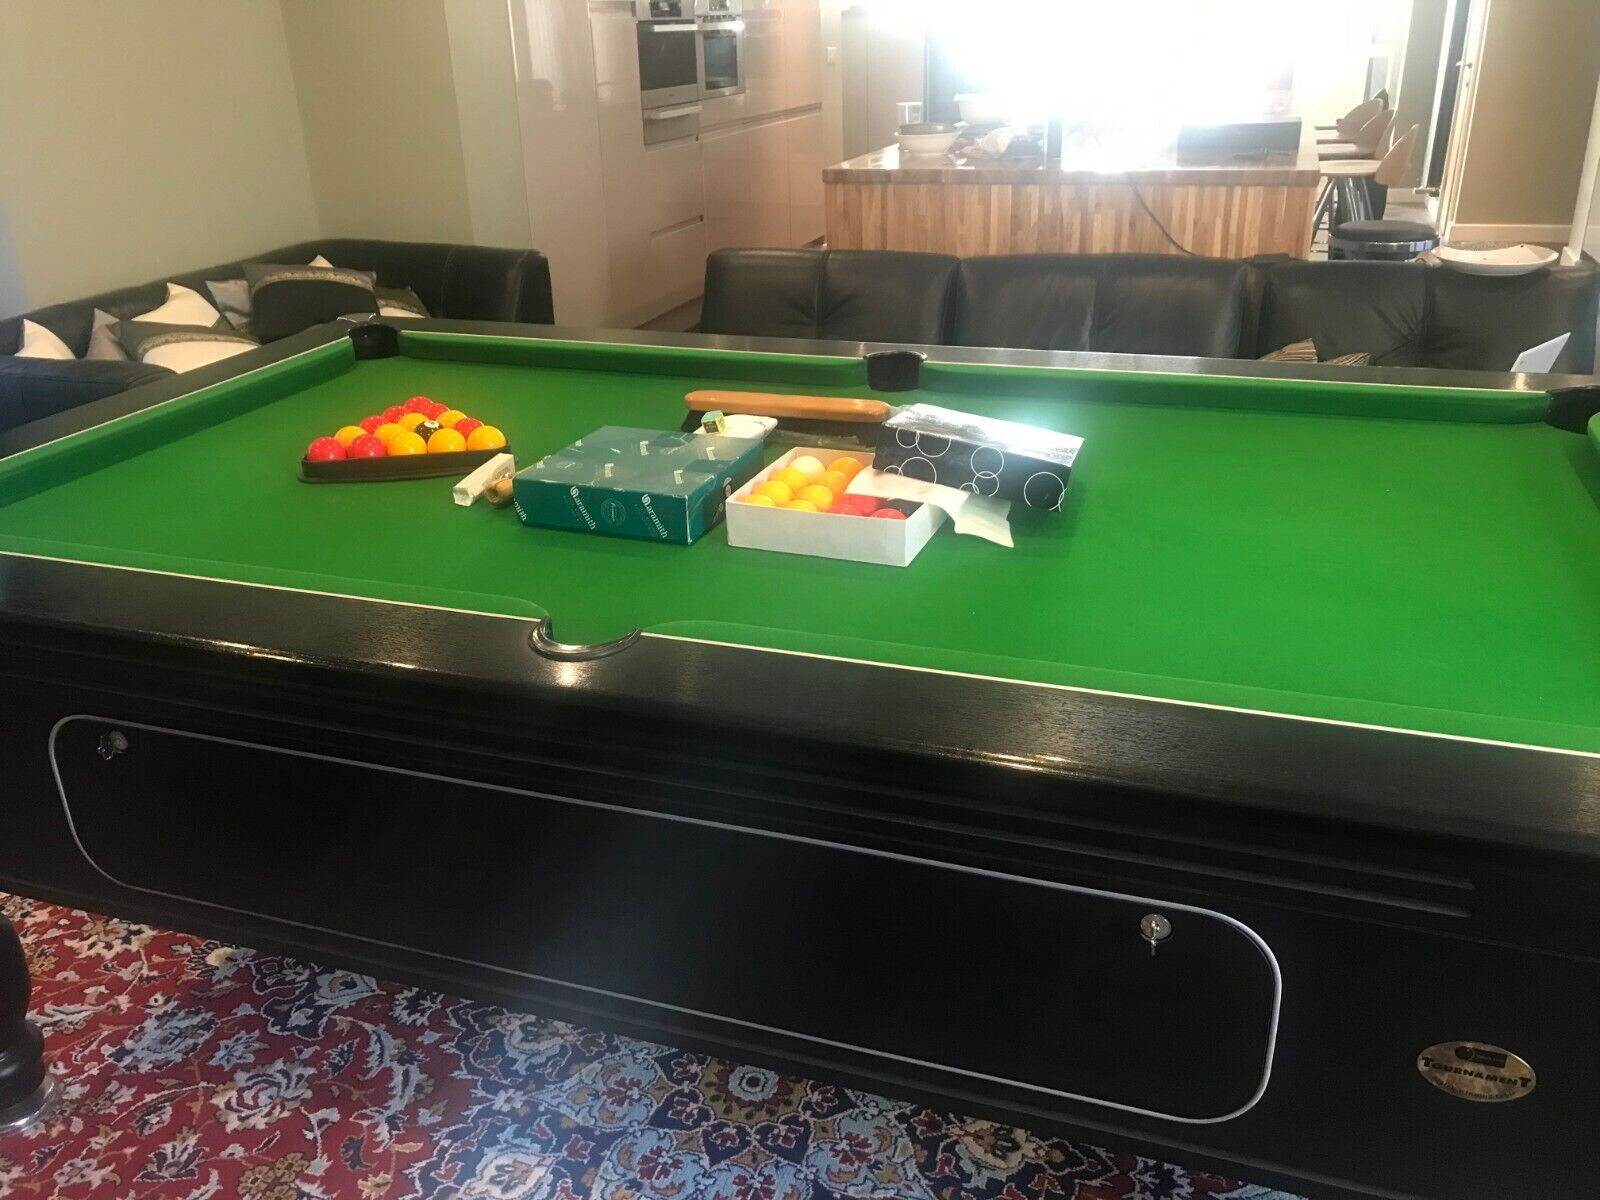 slate bed pool table 7 foot, simply pool tournament, match winning table, black